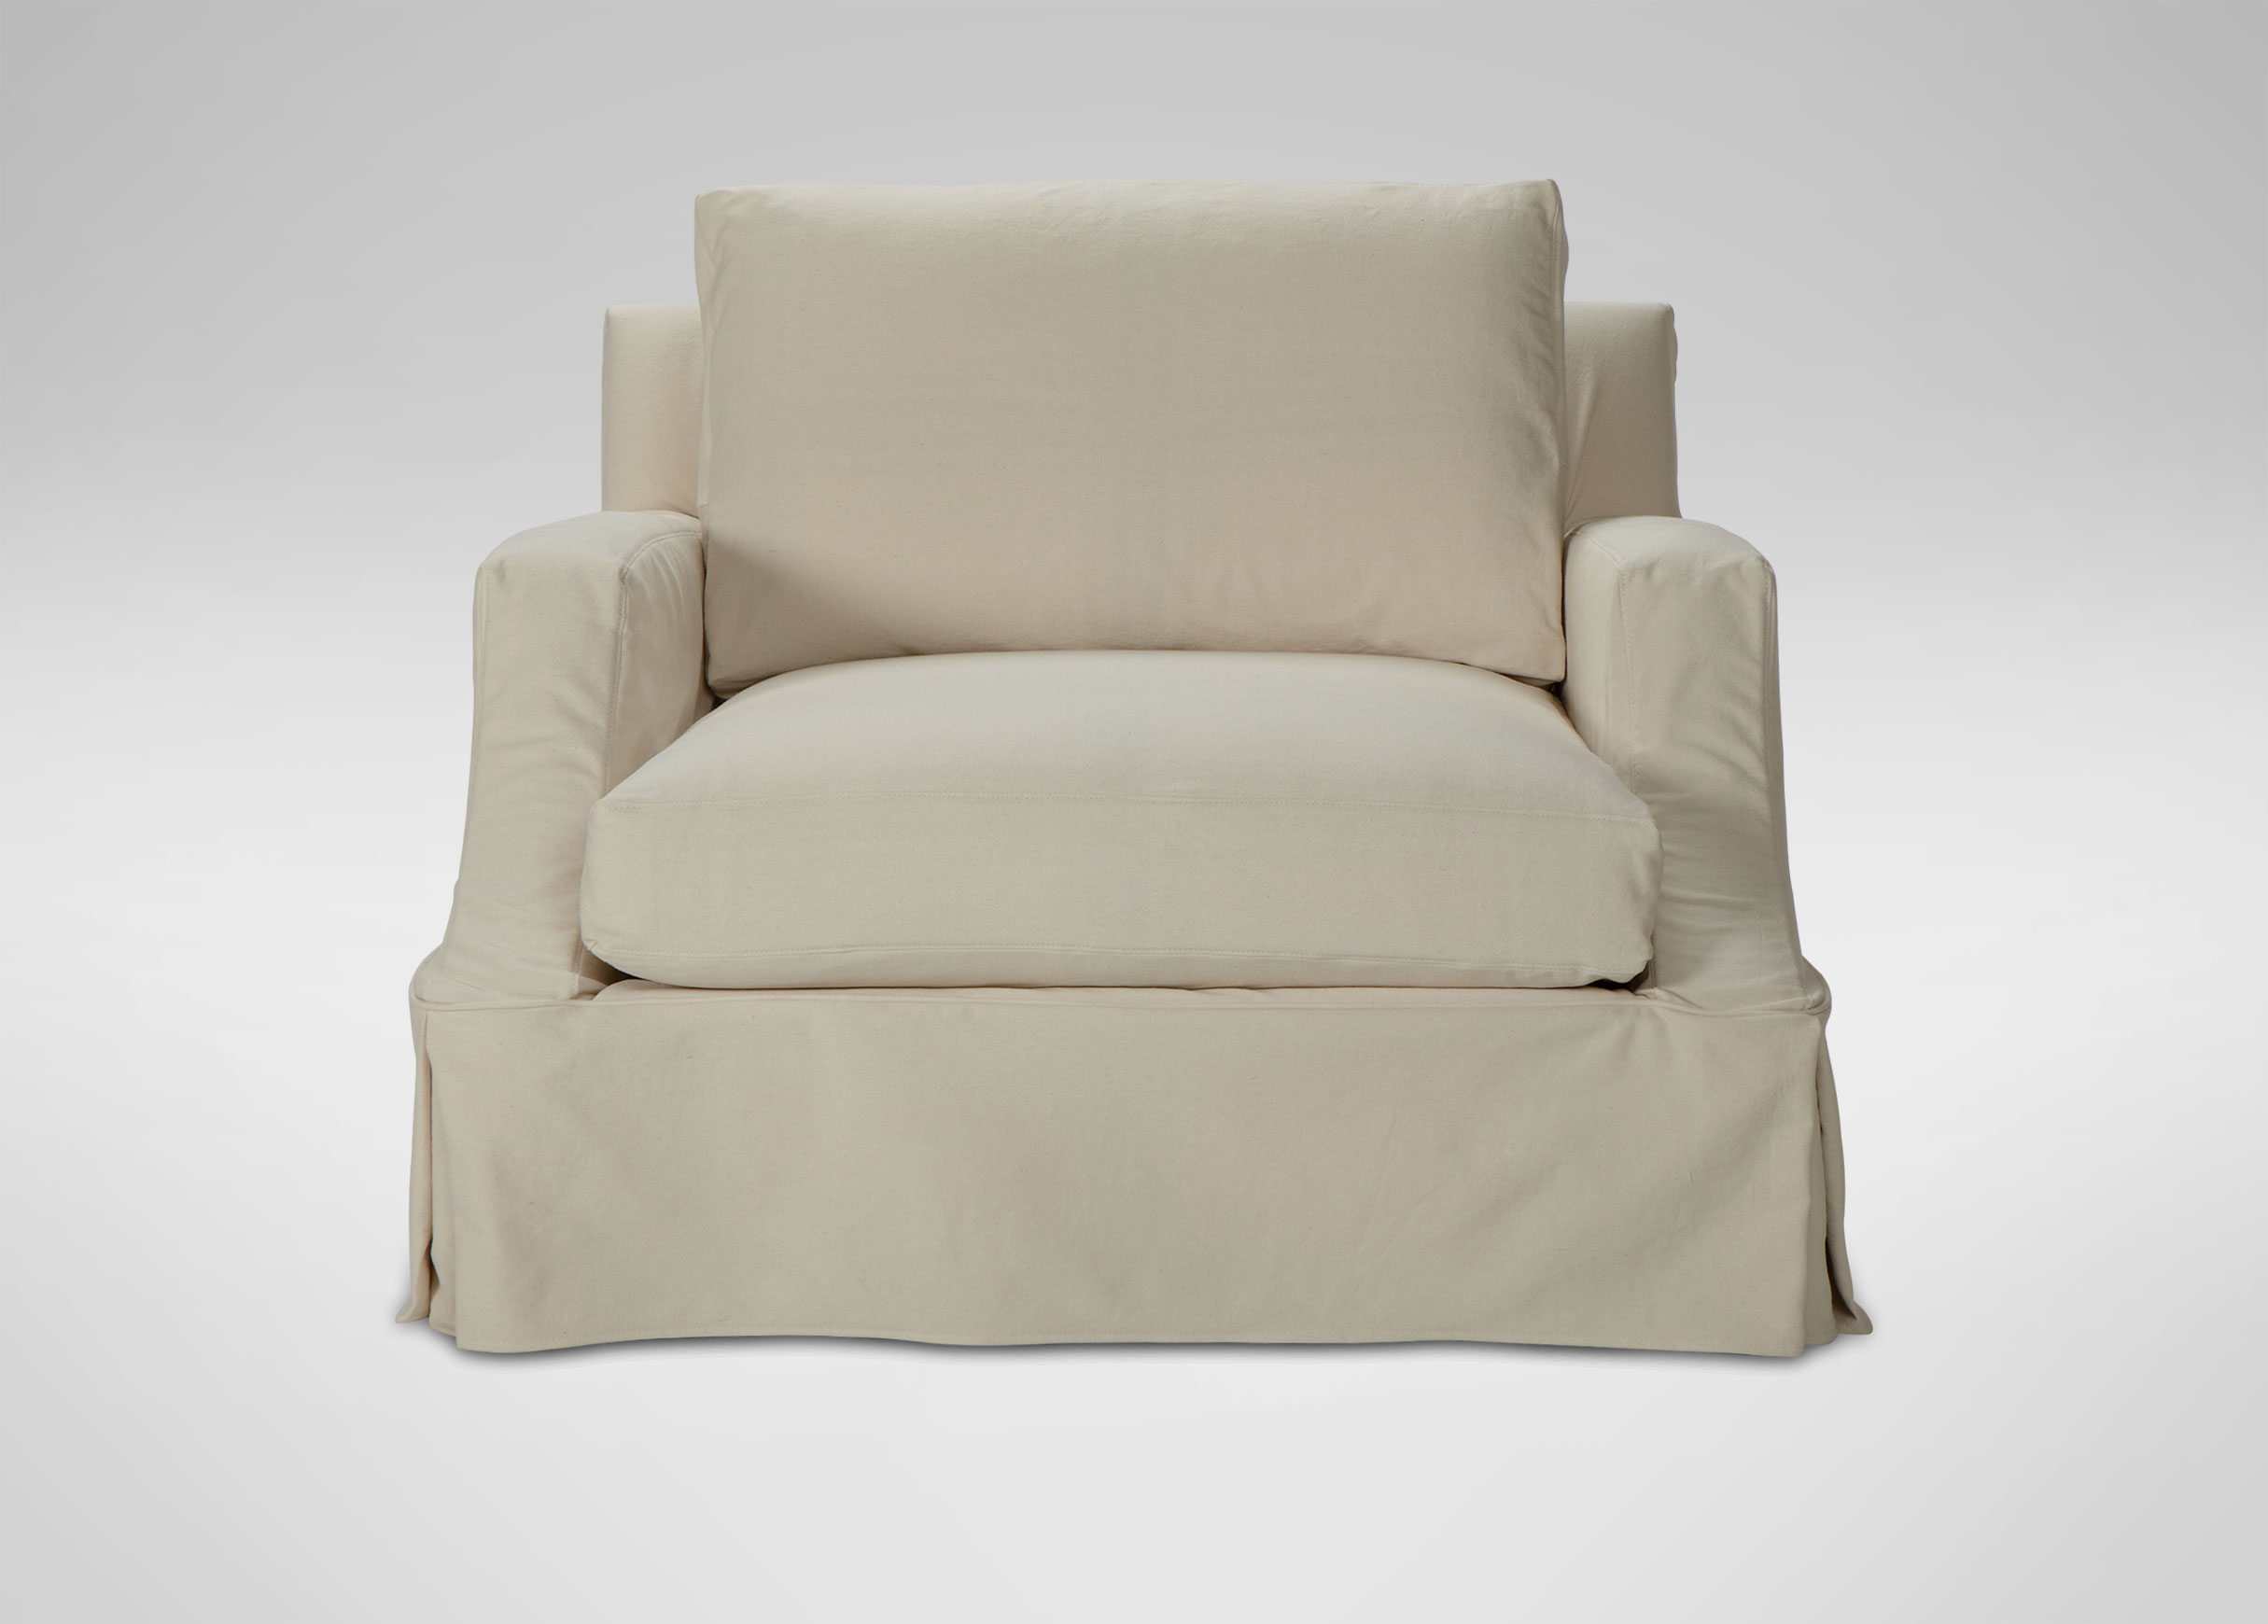 Furniture & Rug Slipcovered Sofas Clearance